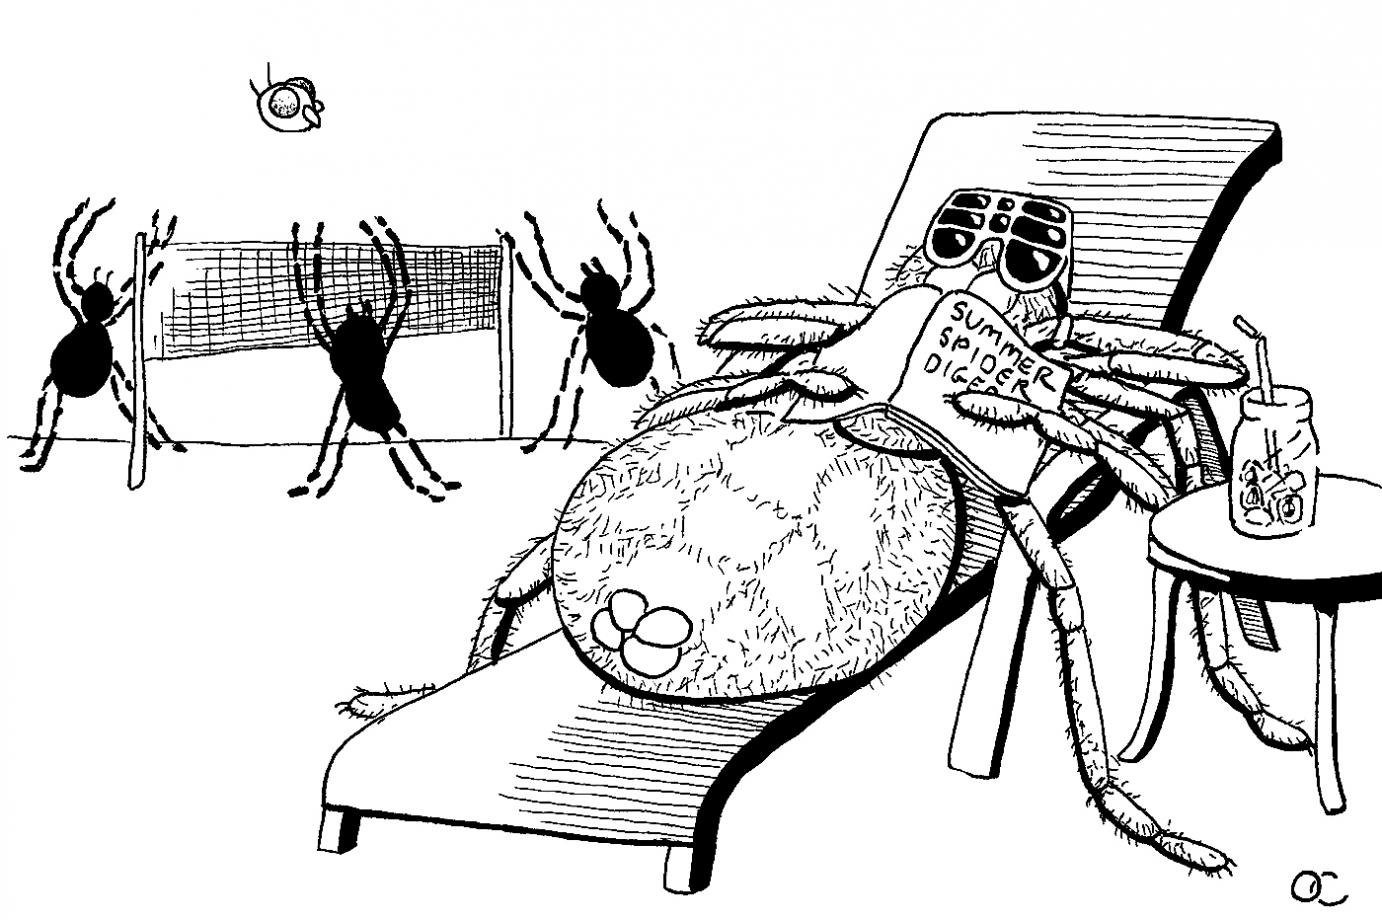 a comic showing a spider lounging in the sun with sunglasses on